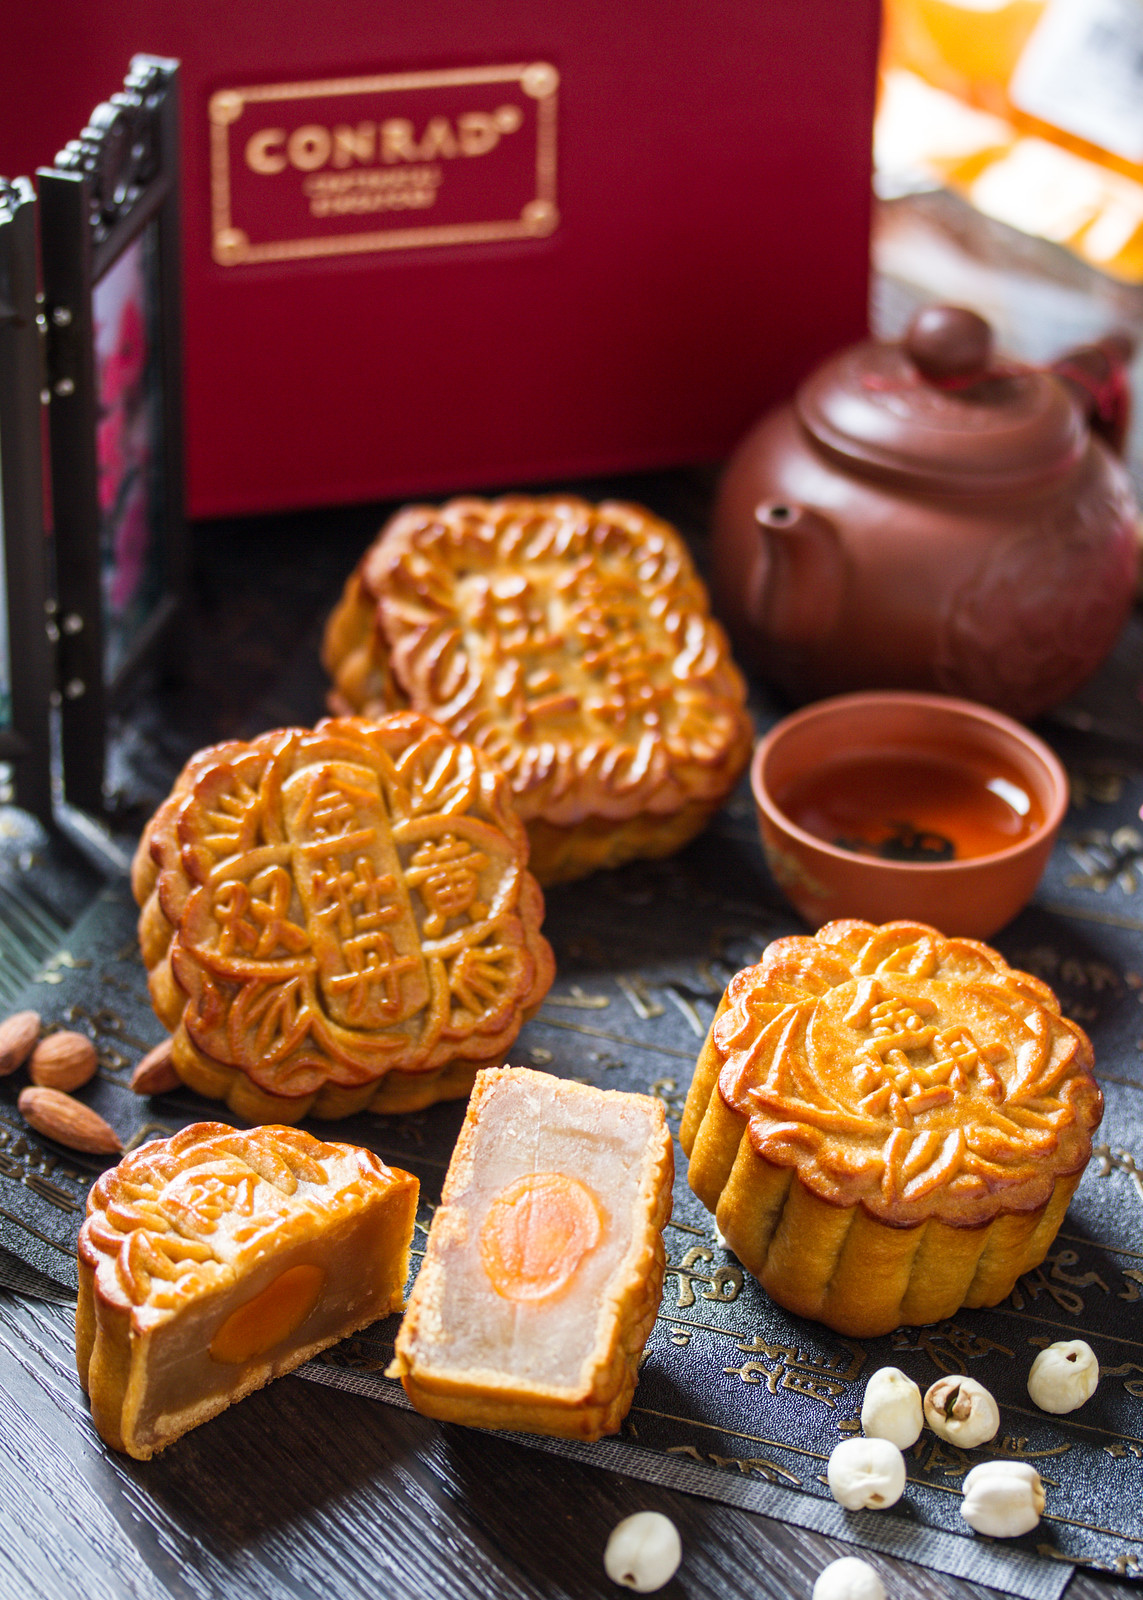 Conrad Centennial Mooncake: Golden Peony's Traditional Baked with White Lotus Paste Mooncake